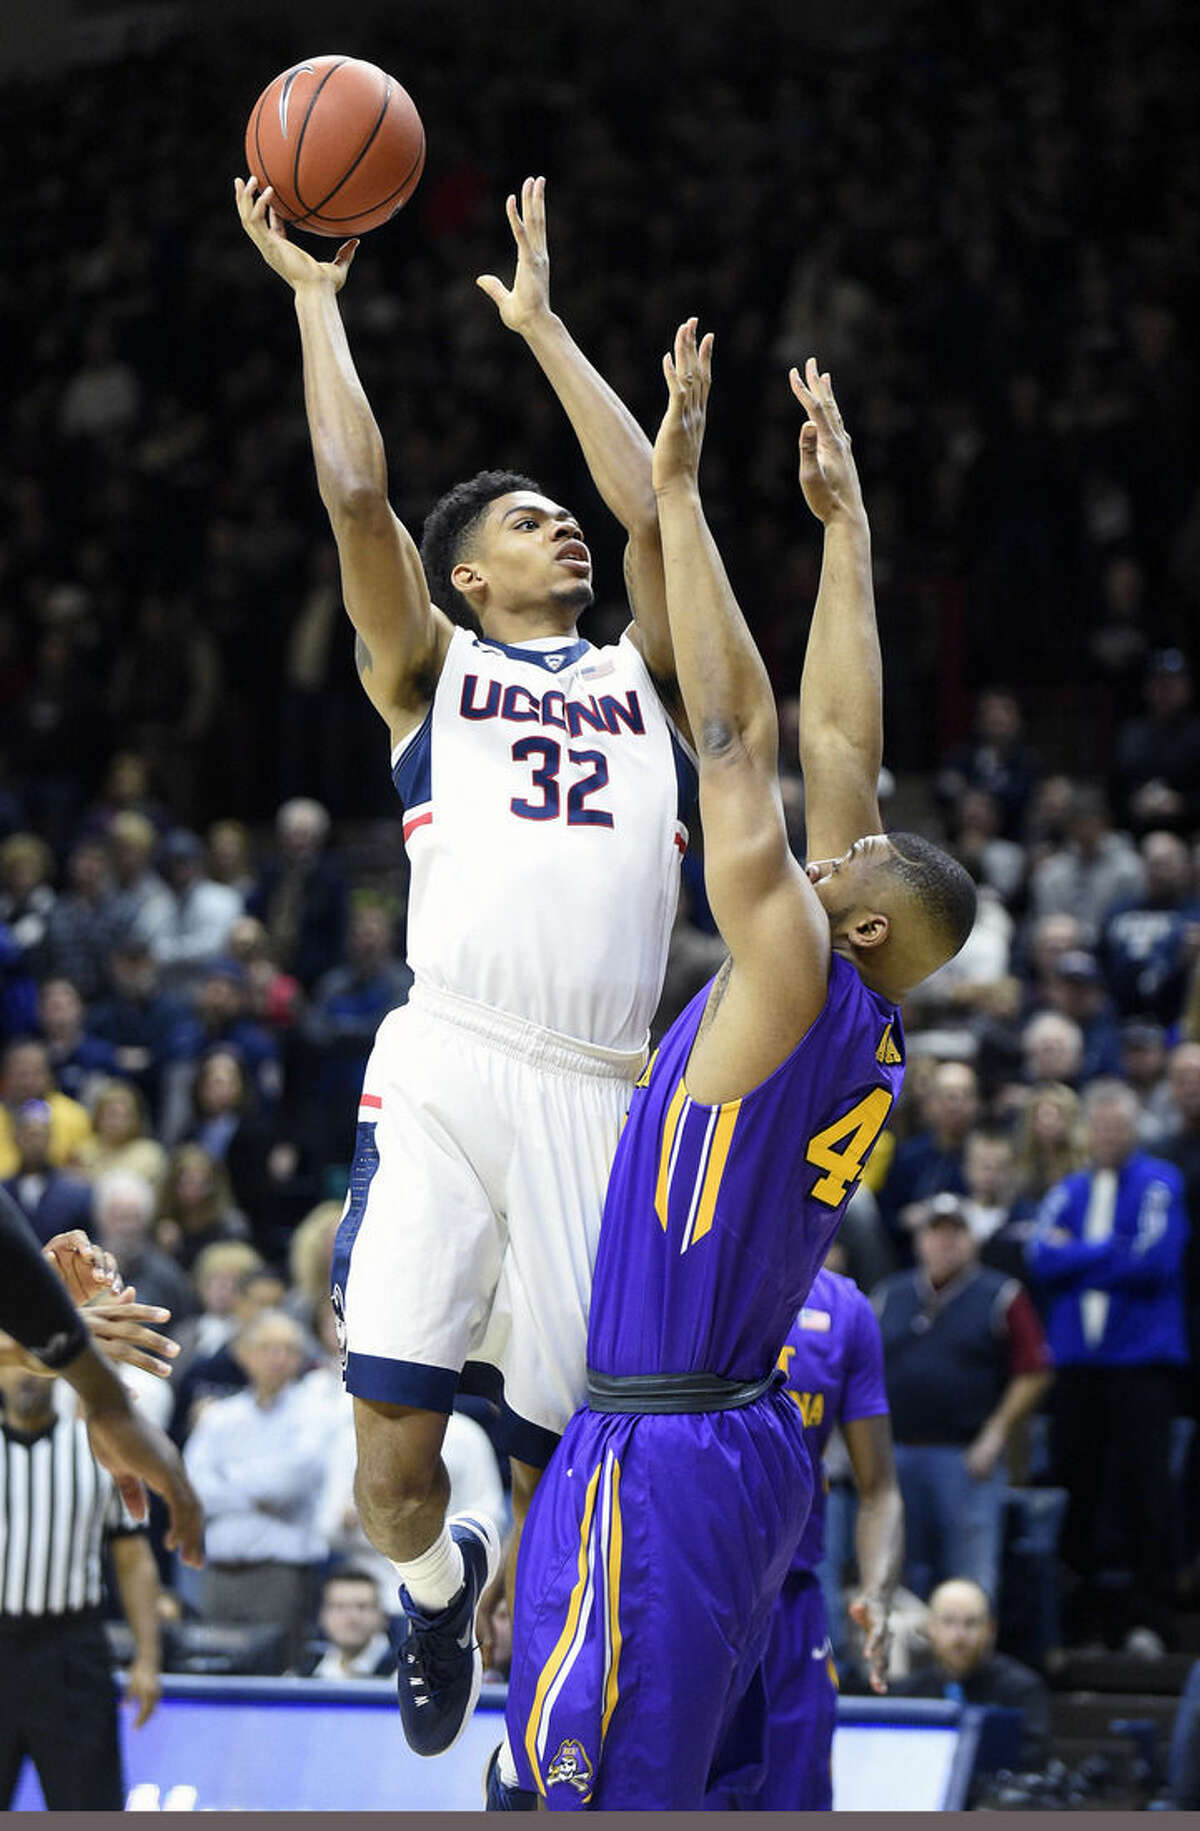 Connecticut's Shonn Miller (32) drives over East Carolina's Kanu Aja (44) during the first half of an NCAA college basketball game in Storrs, Conn., on Sunday, Feb. 7, 2016. (AP Photo/Fred Beckham)